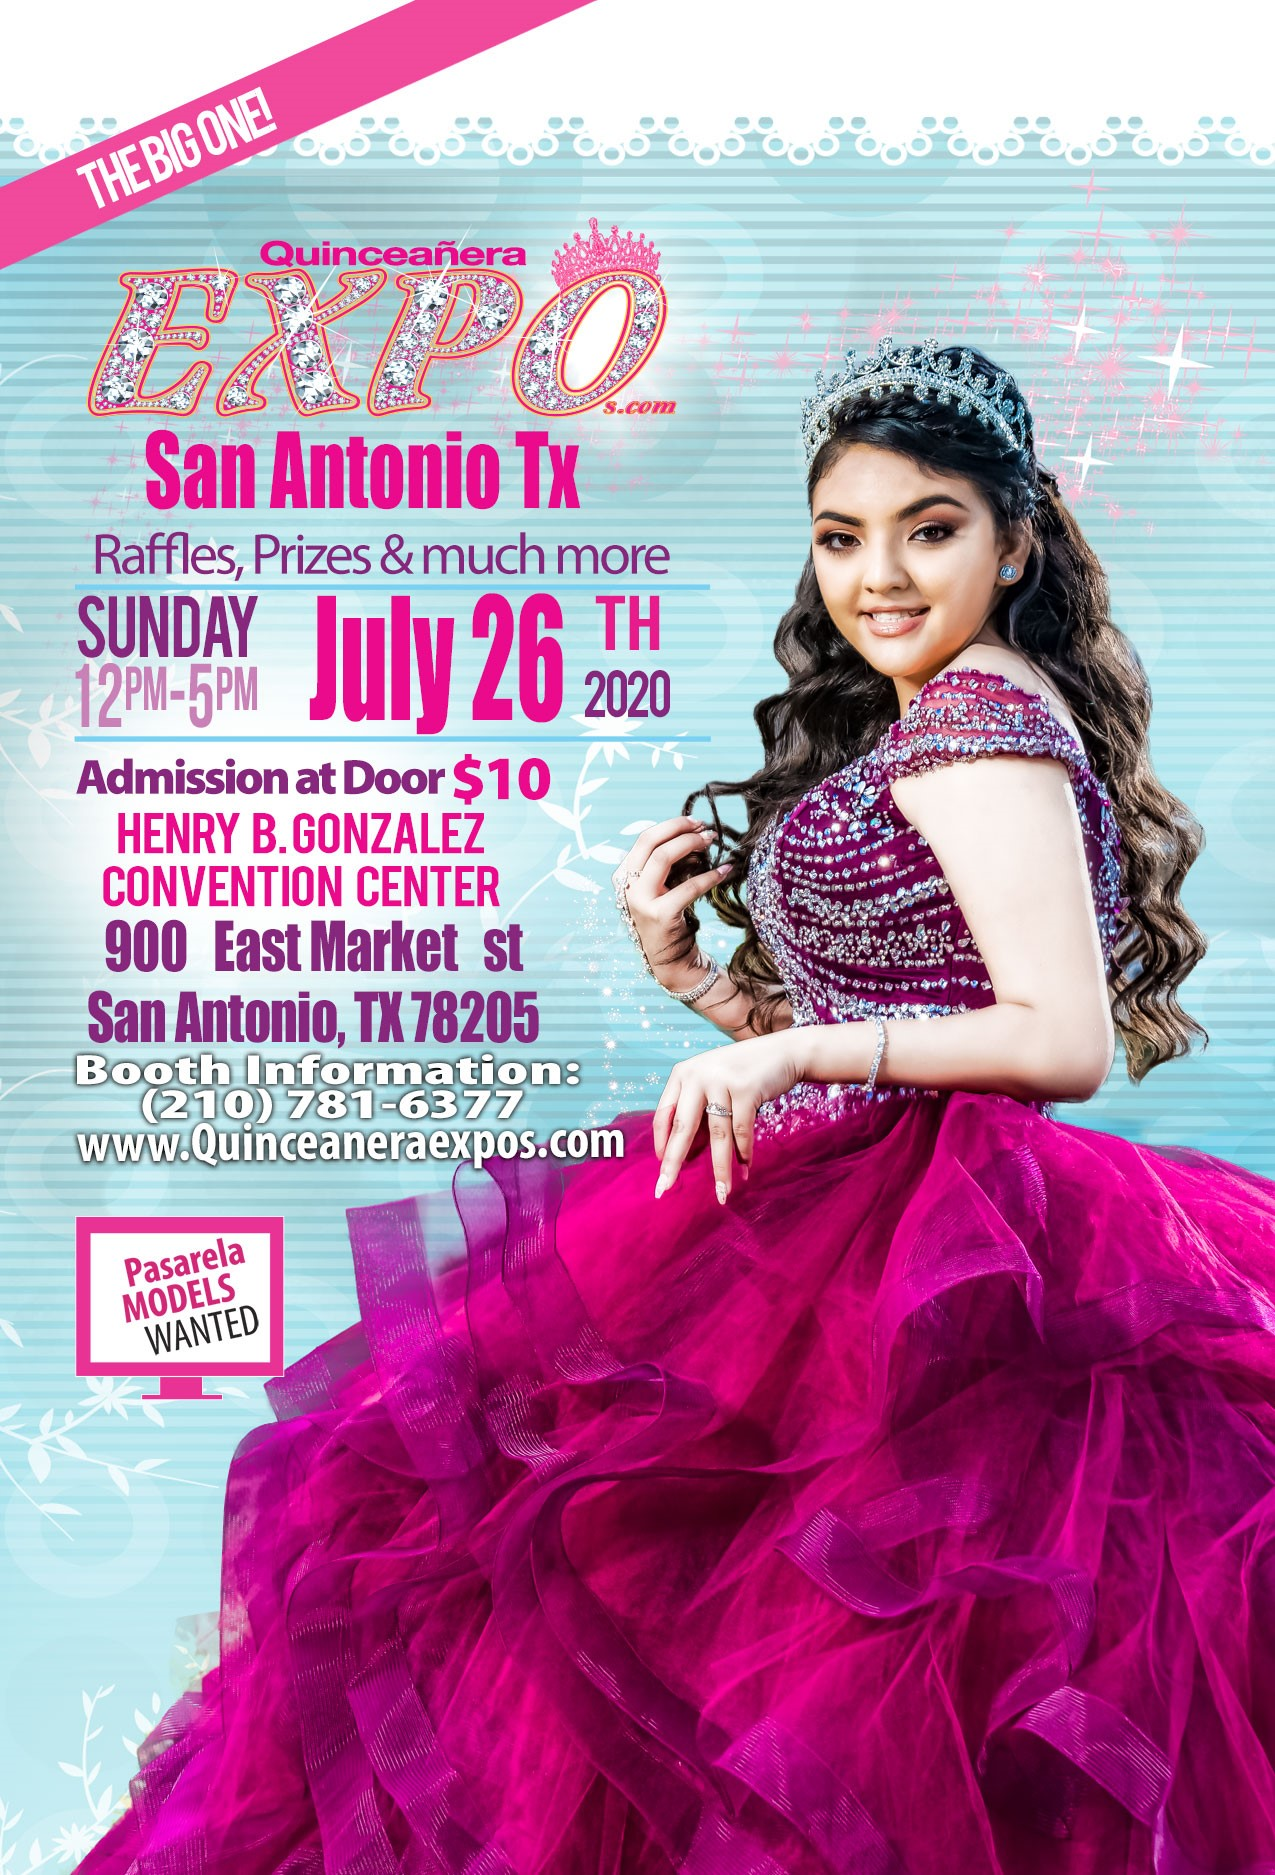 San Antonio Quinceanera Expo July 26th 2020 At the Henry B.  on Jul 26, 12:00@Henry B. Gonzalez Convention Center - Buy tickets and Get information on Quinceanera Expo